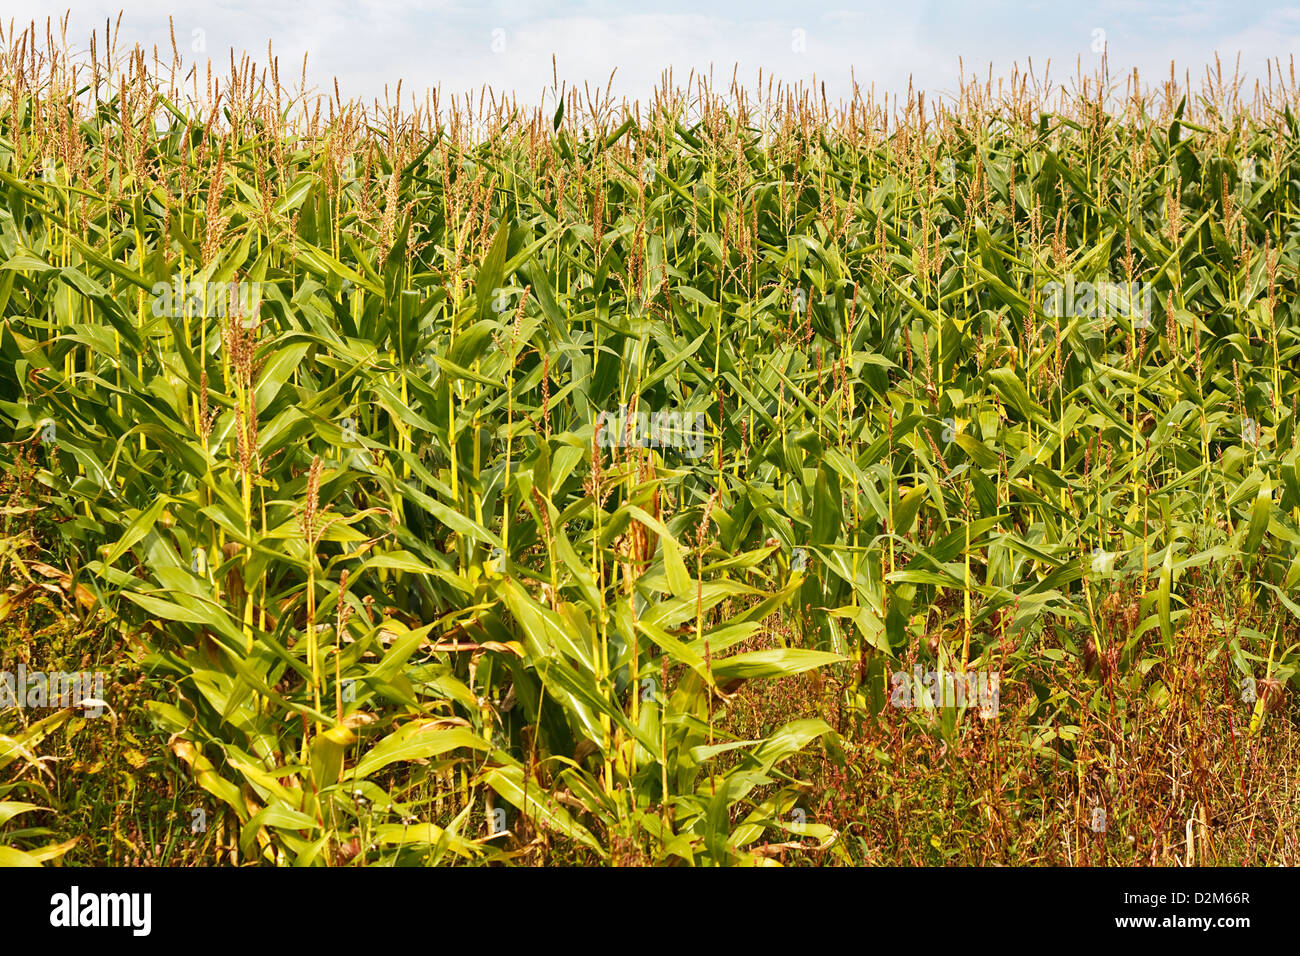 Cattle food crop used for silage and alternatively being used for creating renewable eco friendly biomass fuel - Stock Image